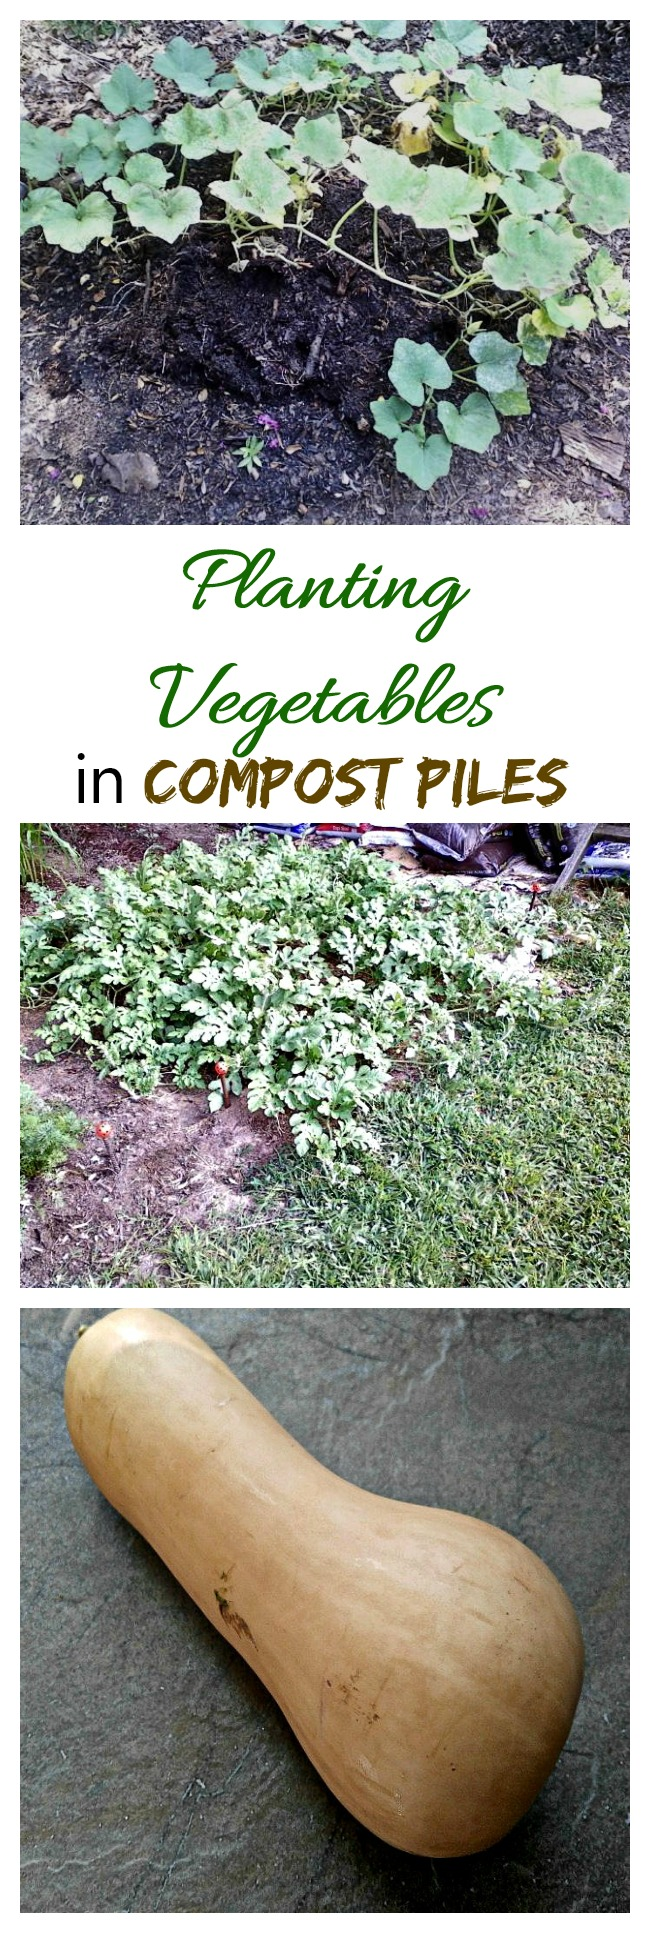 For really large vegetables that don't need fertilizing, try planting in compost piles. I experimented with this last year with great results.